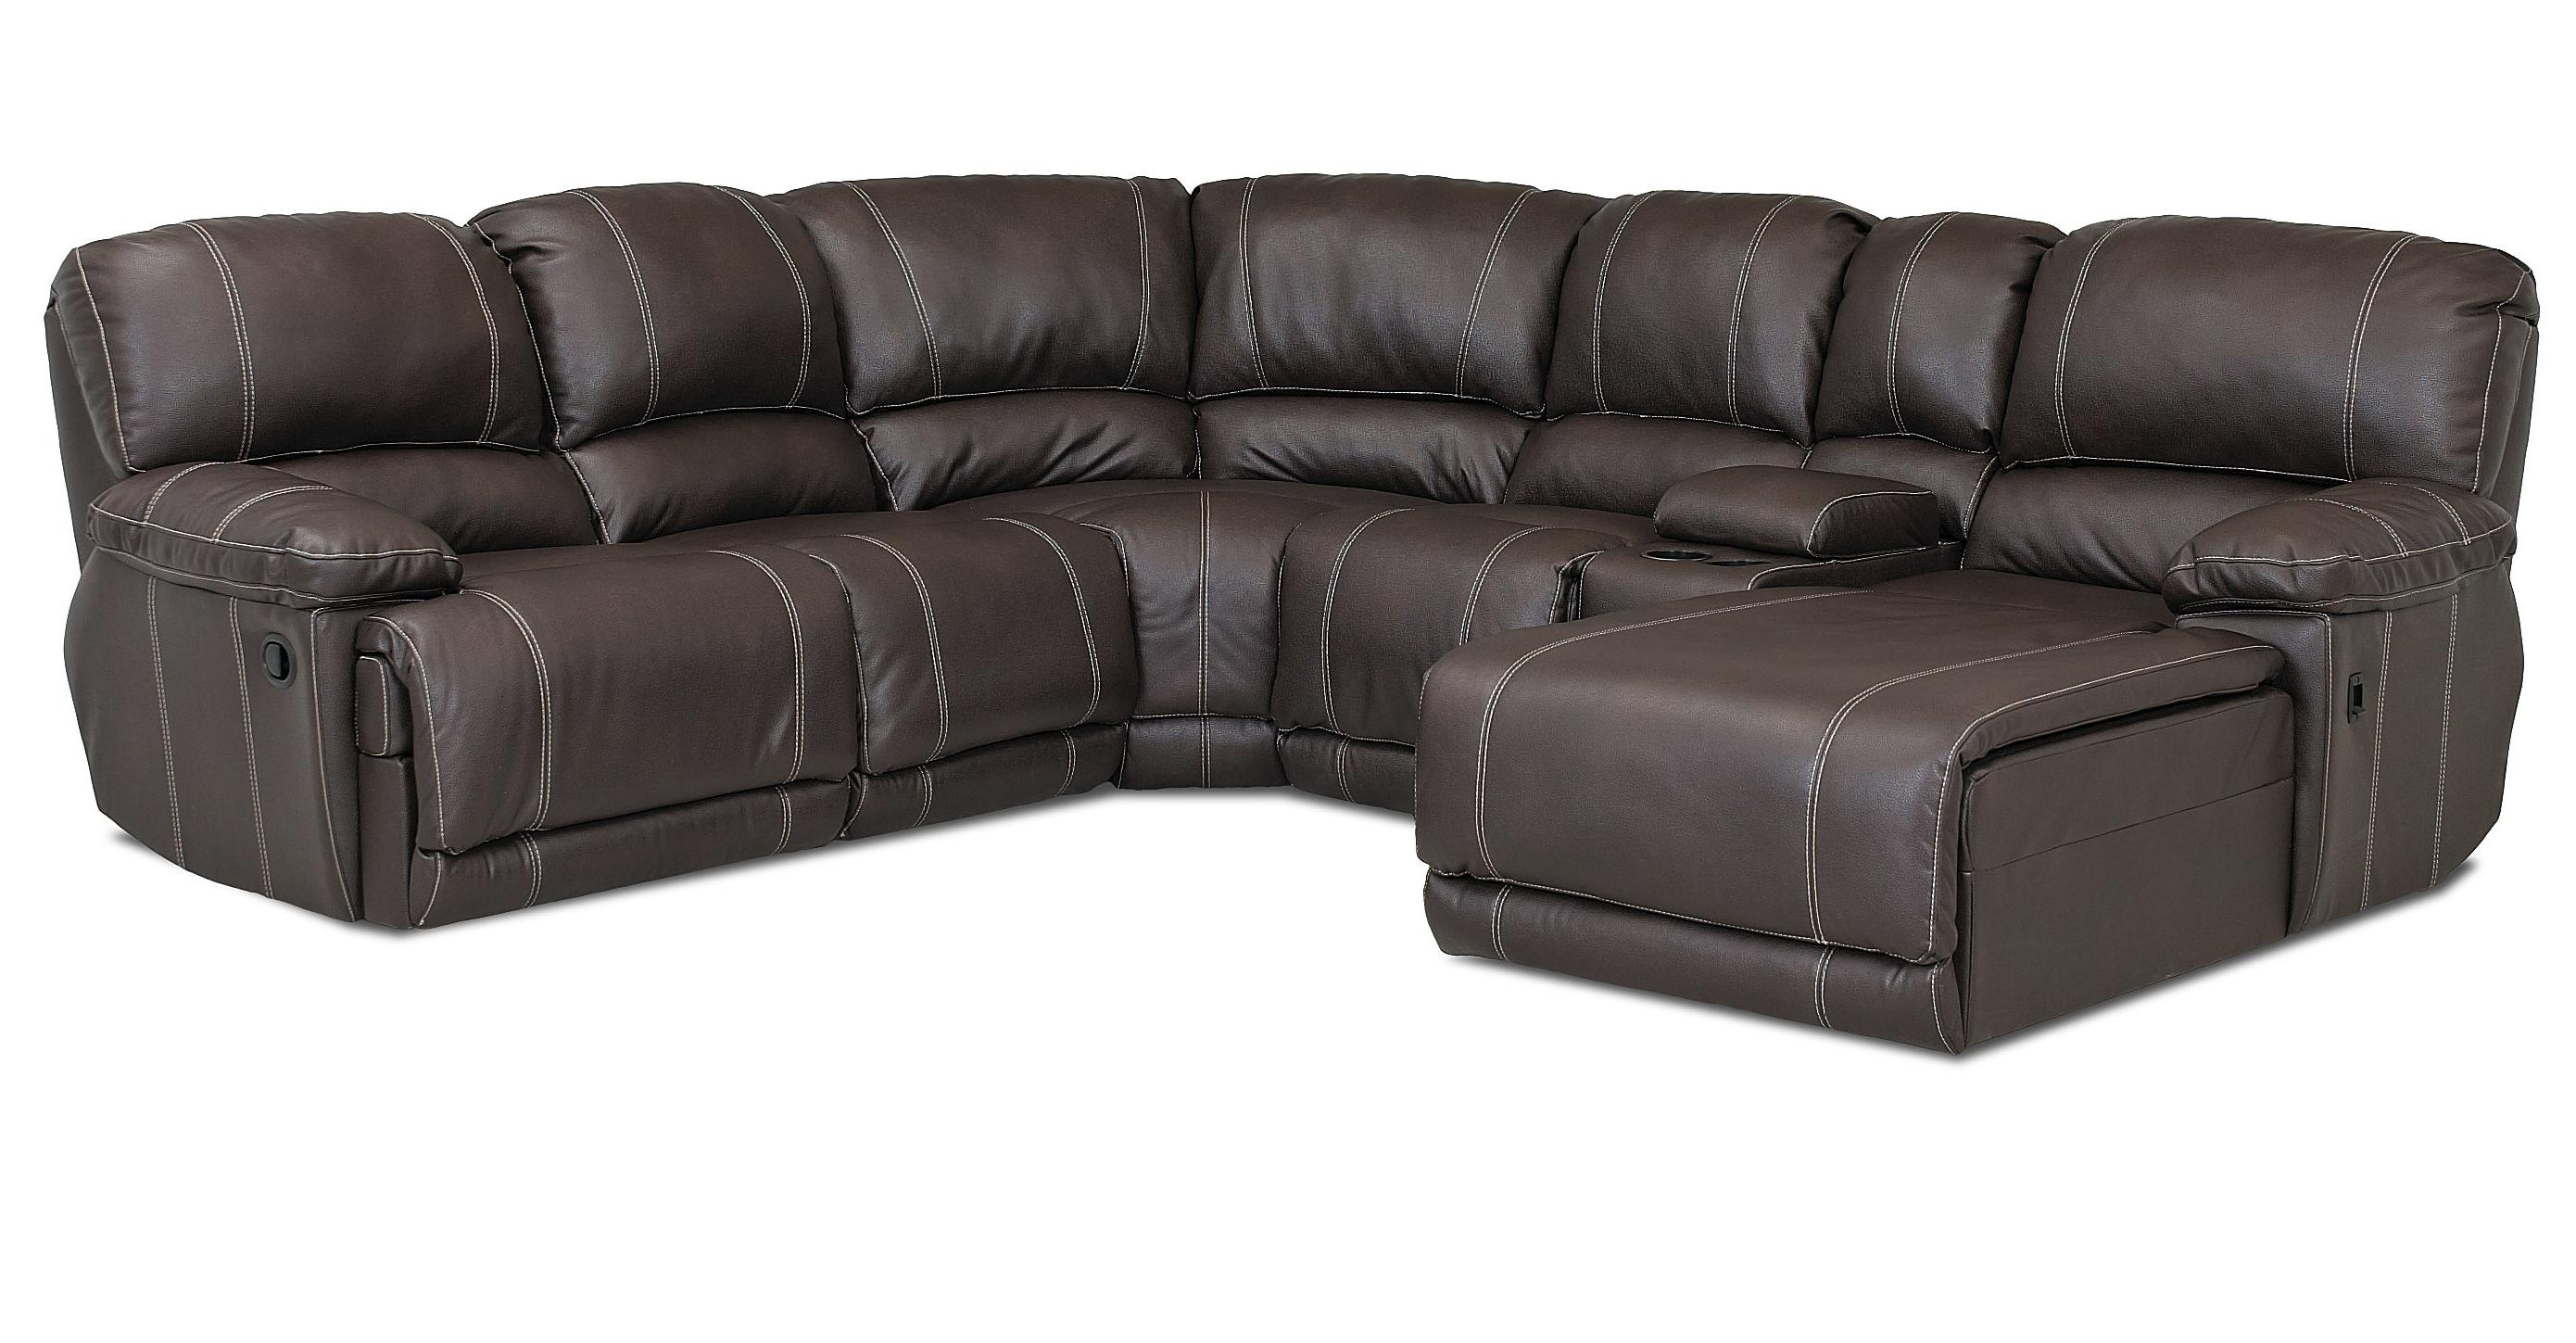 Klaussner Derek Casual Reclining Sectional Sofa With Chaise – Ahfa In Norfolk Chocolate 6 Piece Sectionals (View 14 of 25)